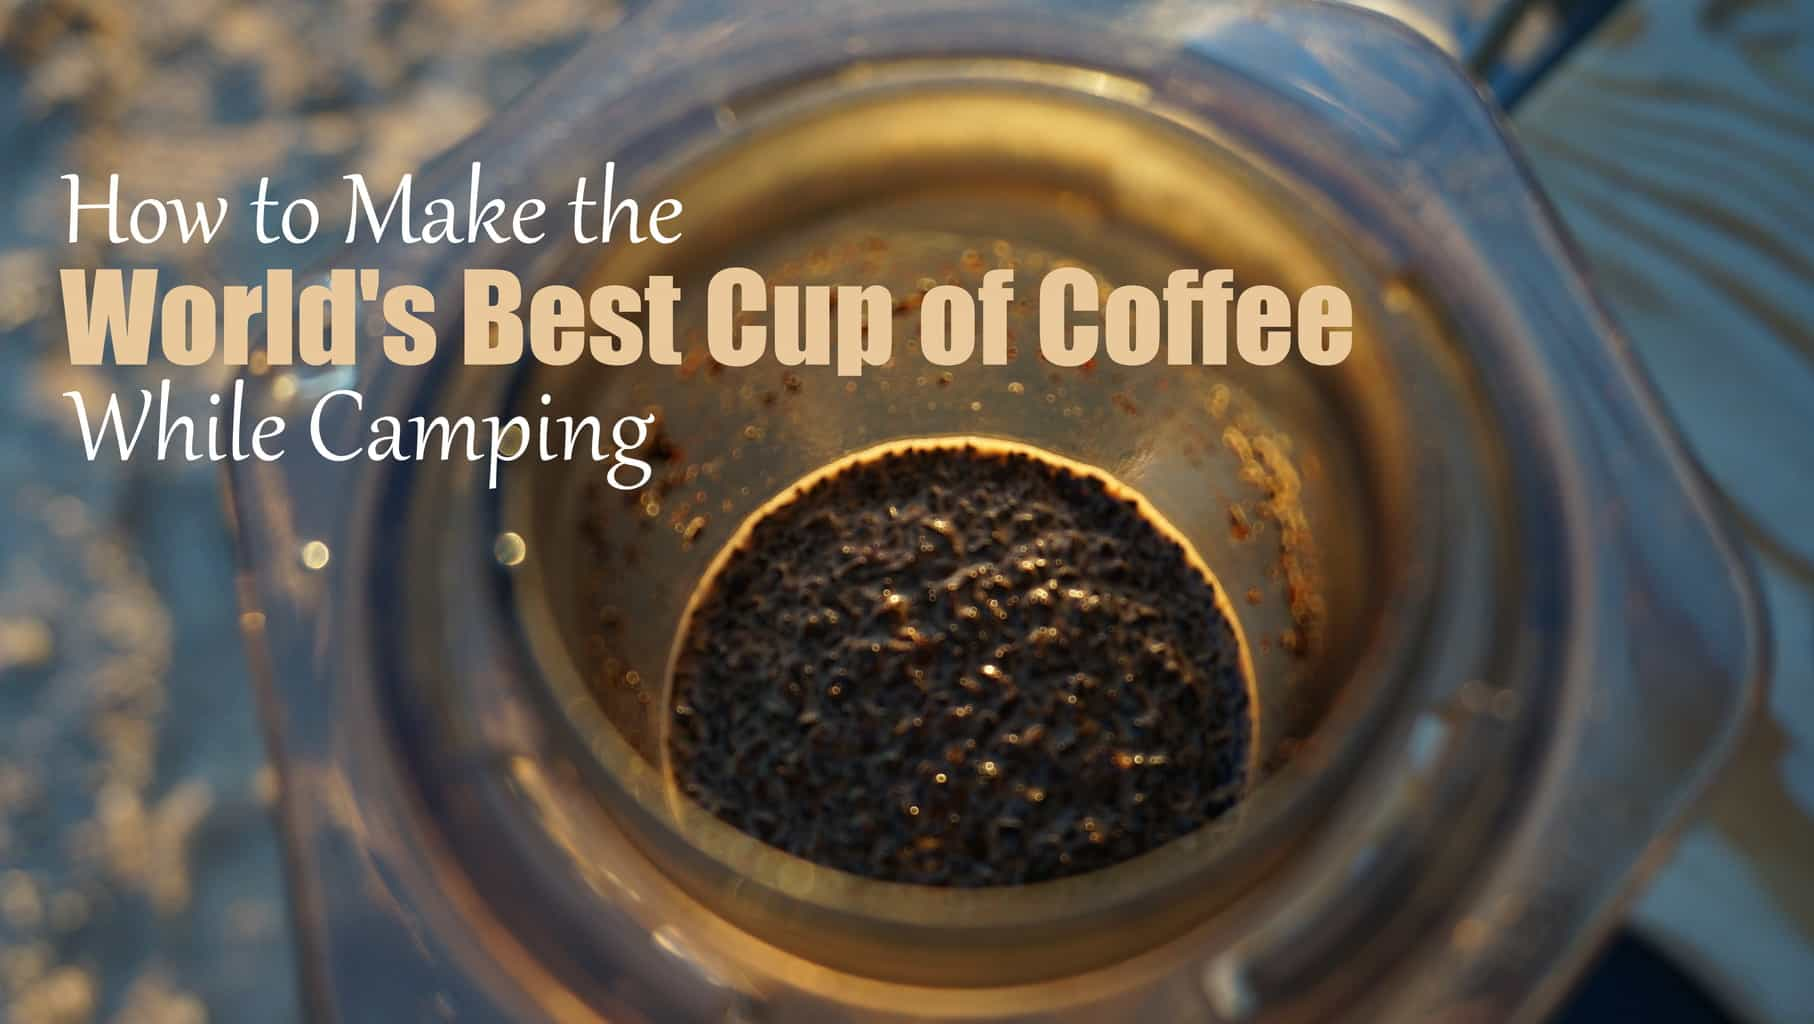 How to prepare to go camping